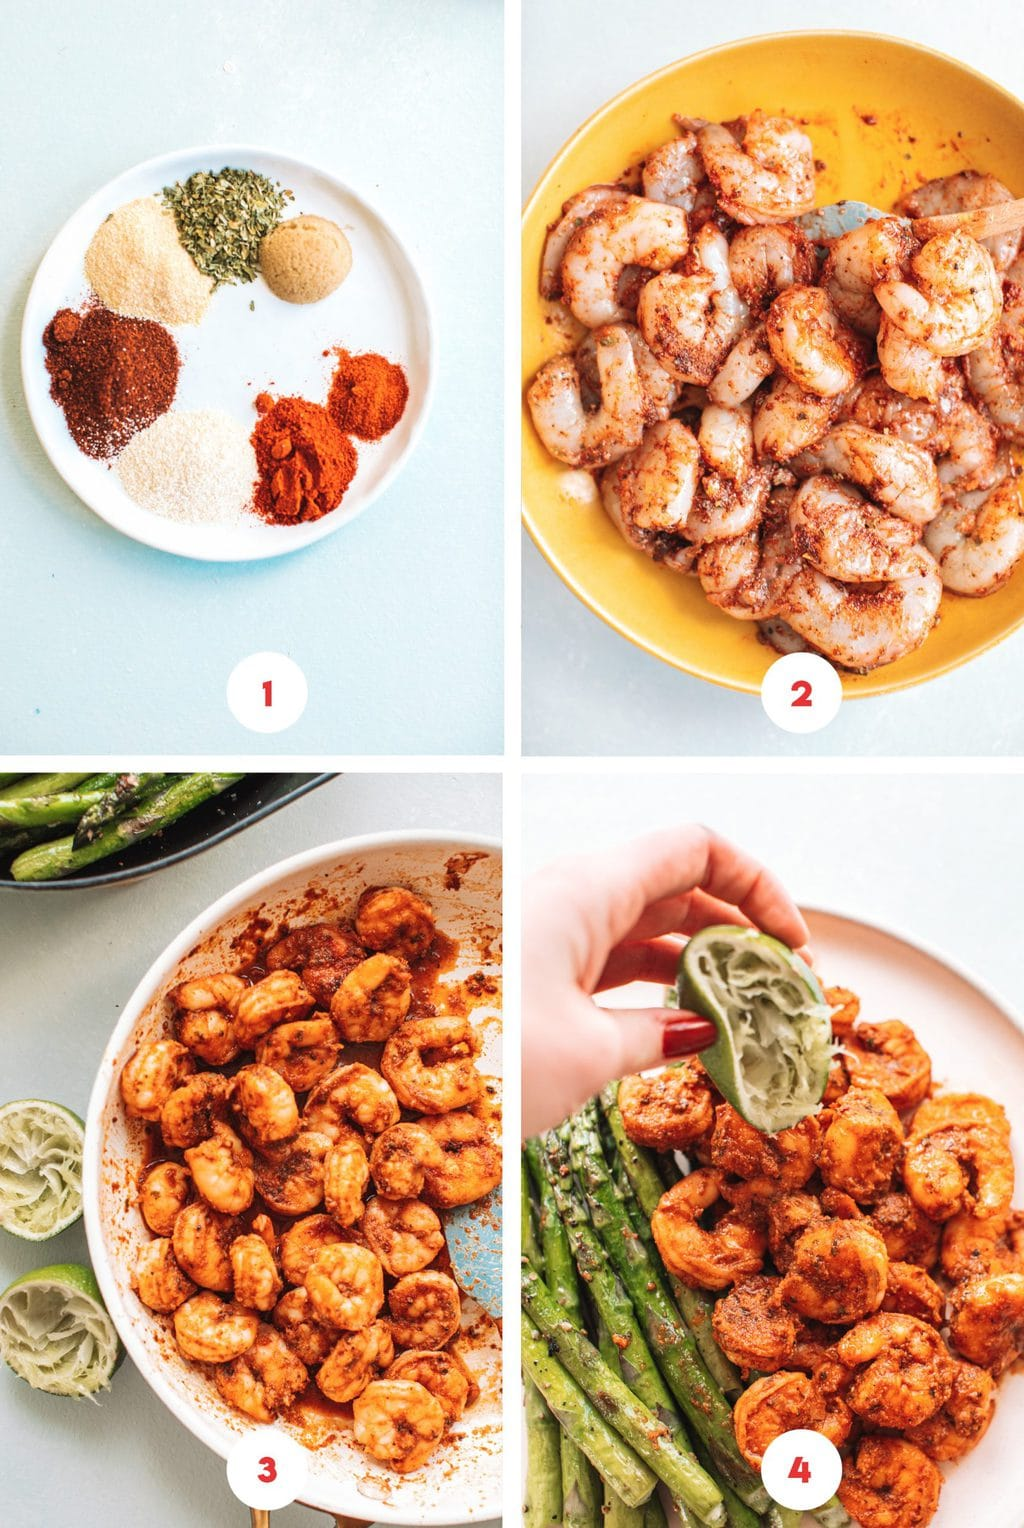 Step by step images showing how to make blackened shrimp.